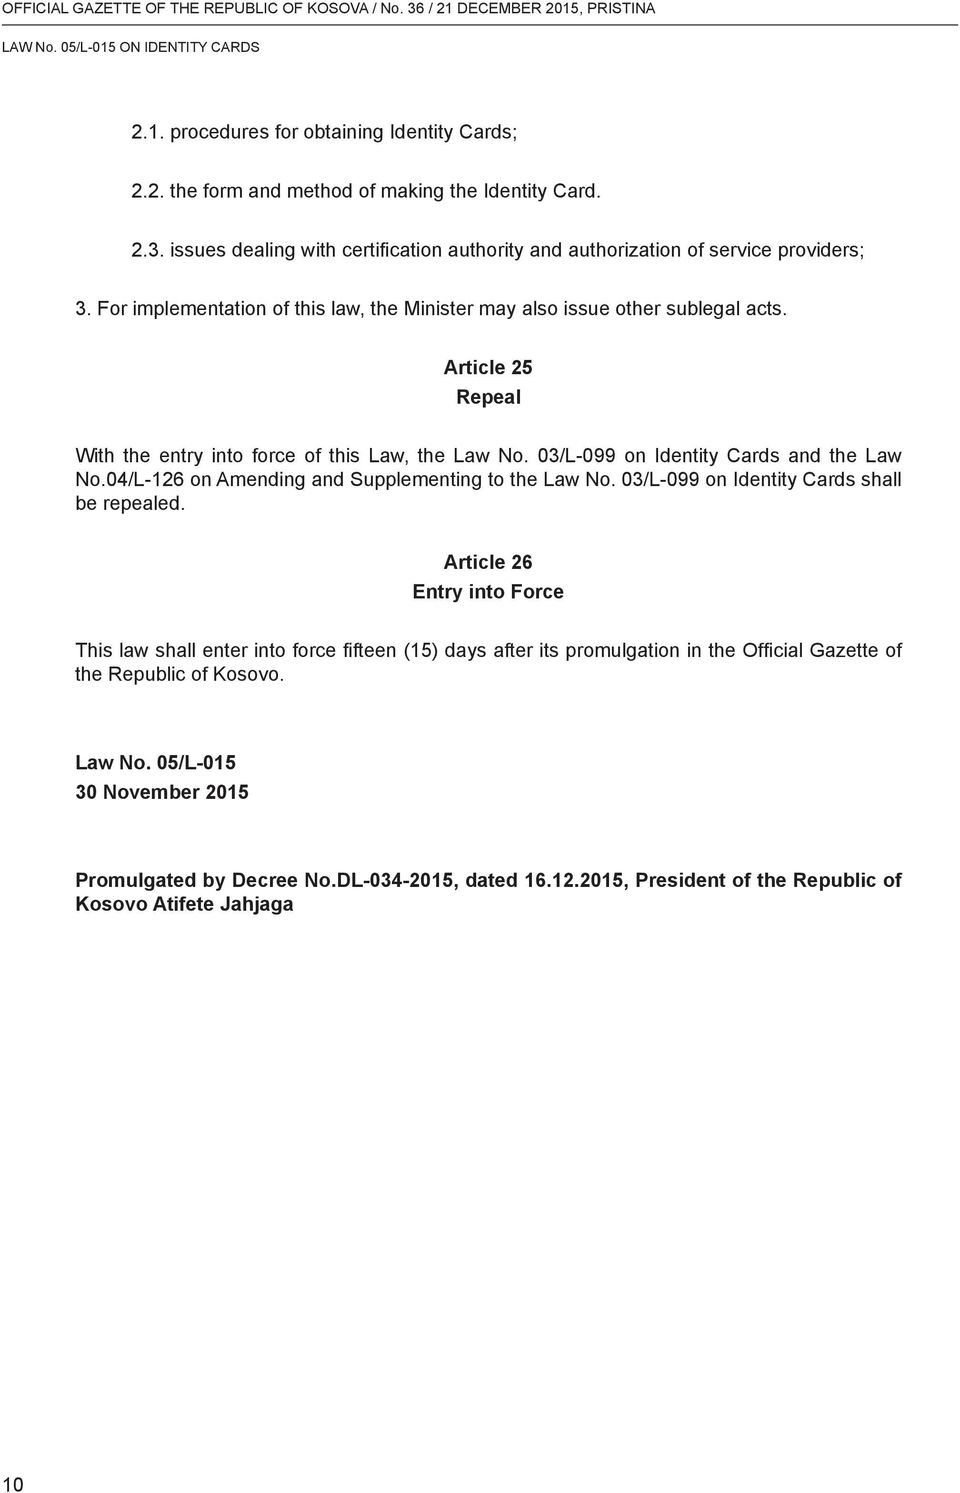 04/L-126 on Amending and Supplementing to the Law No. 03/L-099 on Identity Cards shall be repealed.